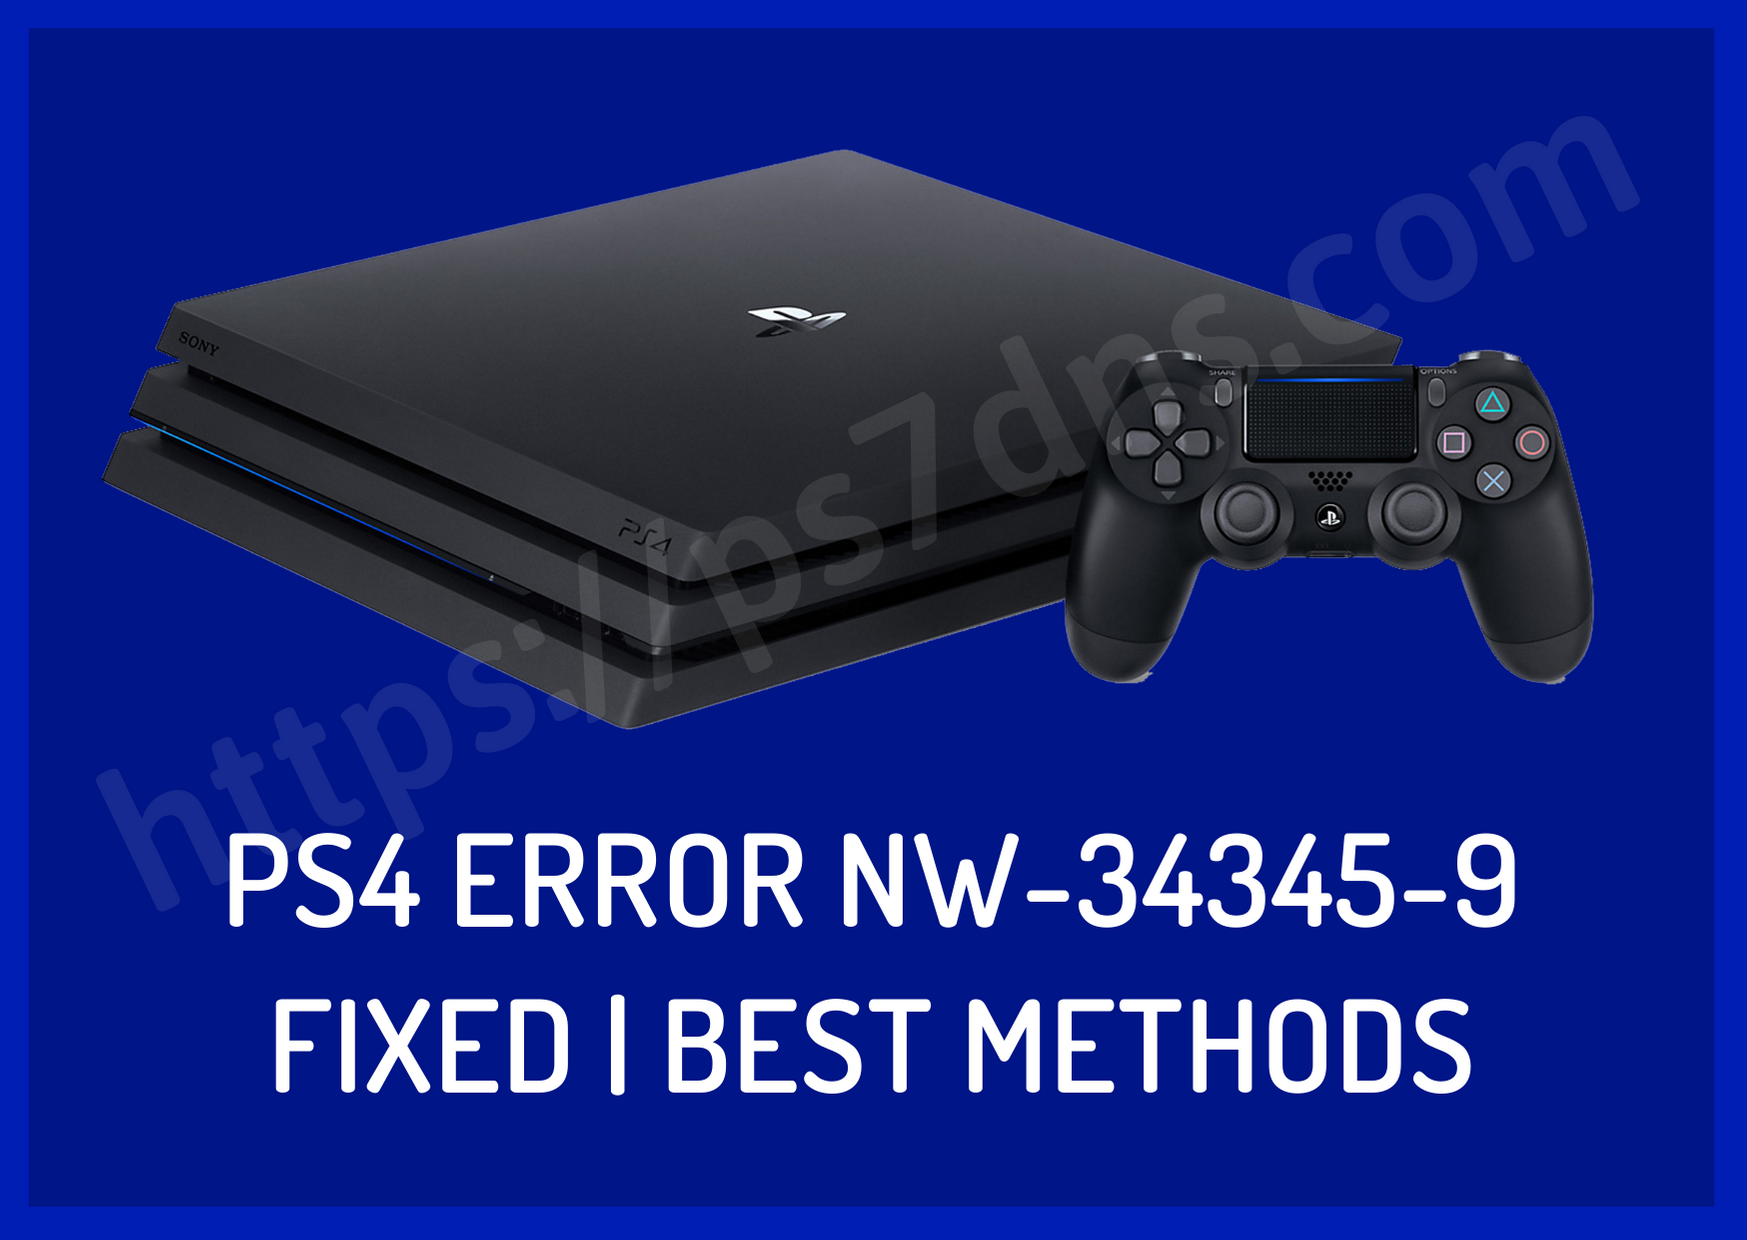 PS4 Error NW-34345-9 - Fixed | Best Methods